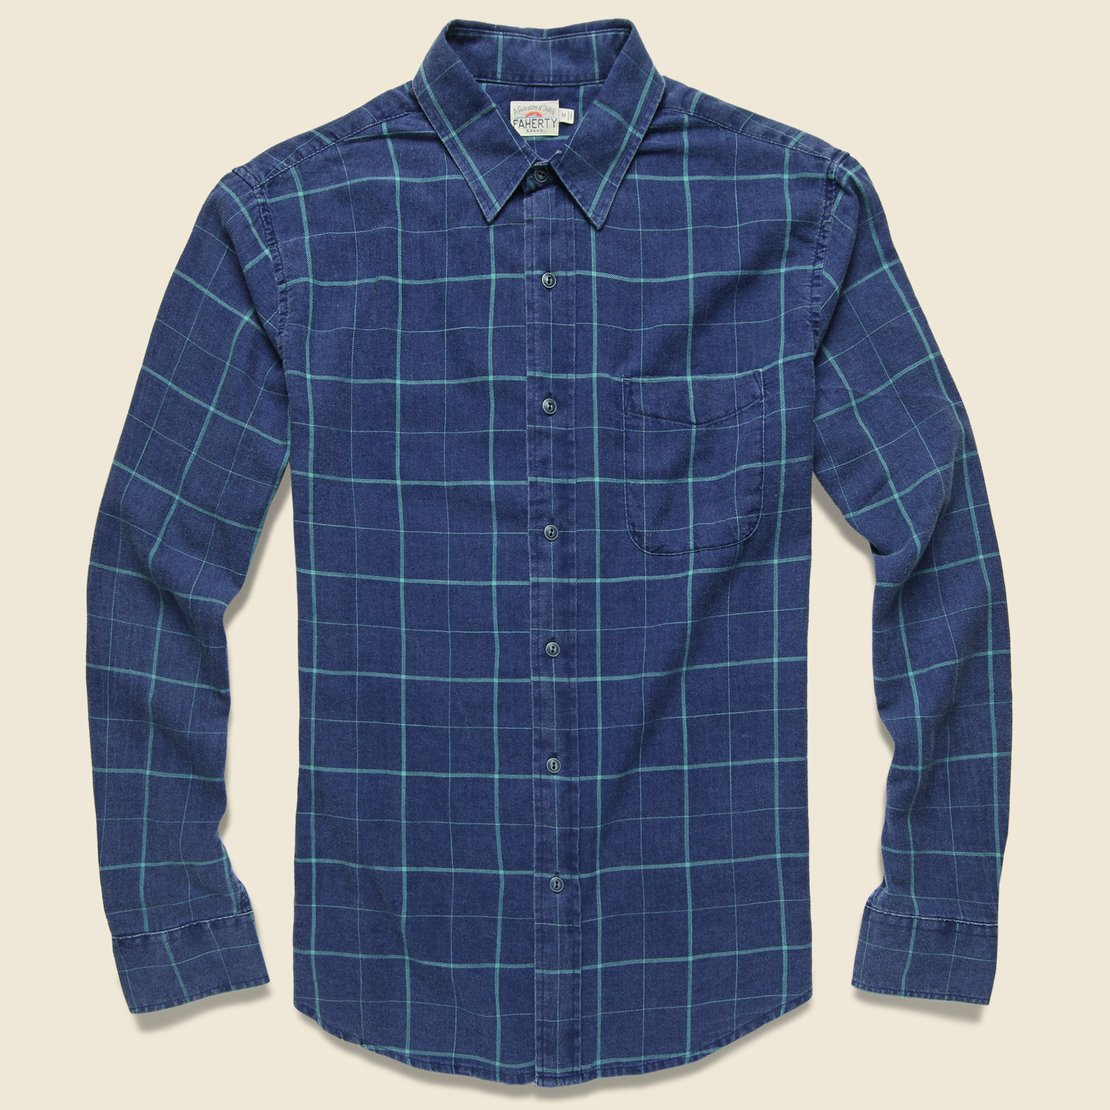 Faherty Windowpane Ventura Shirt - Indigo/Blue